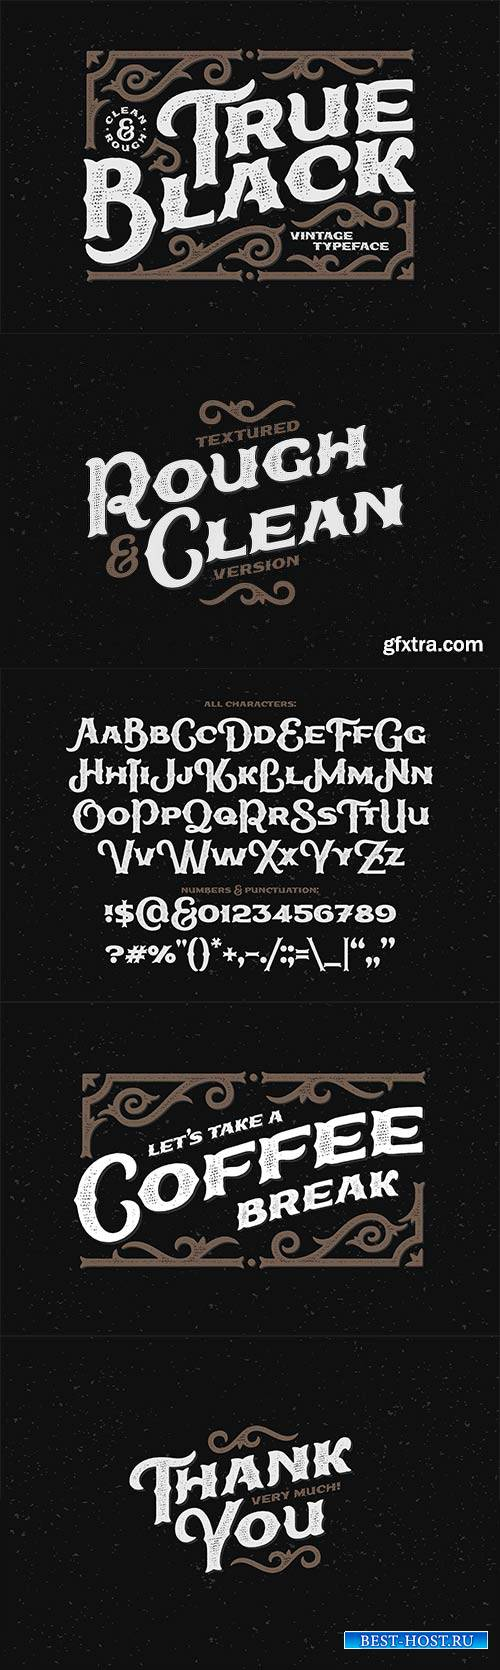 CM - True Black Typeface 2466985